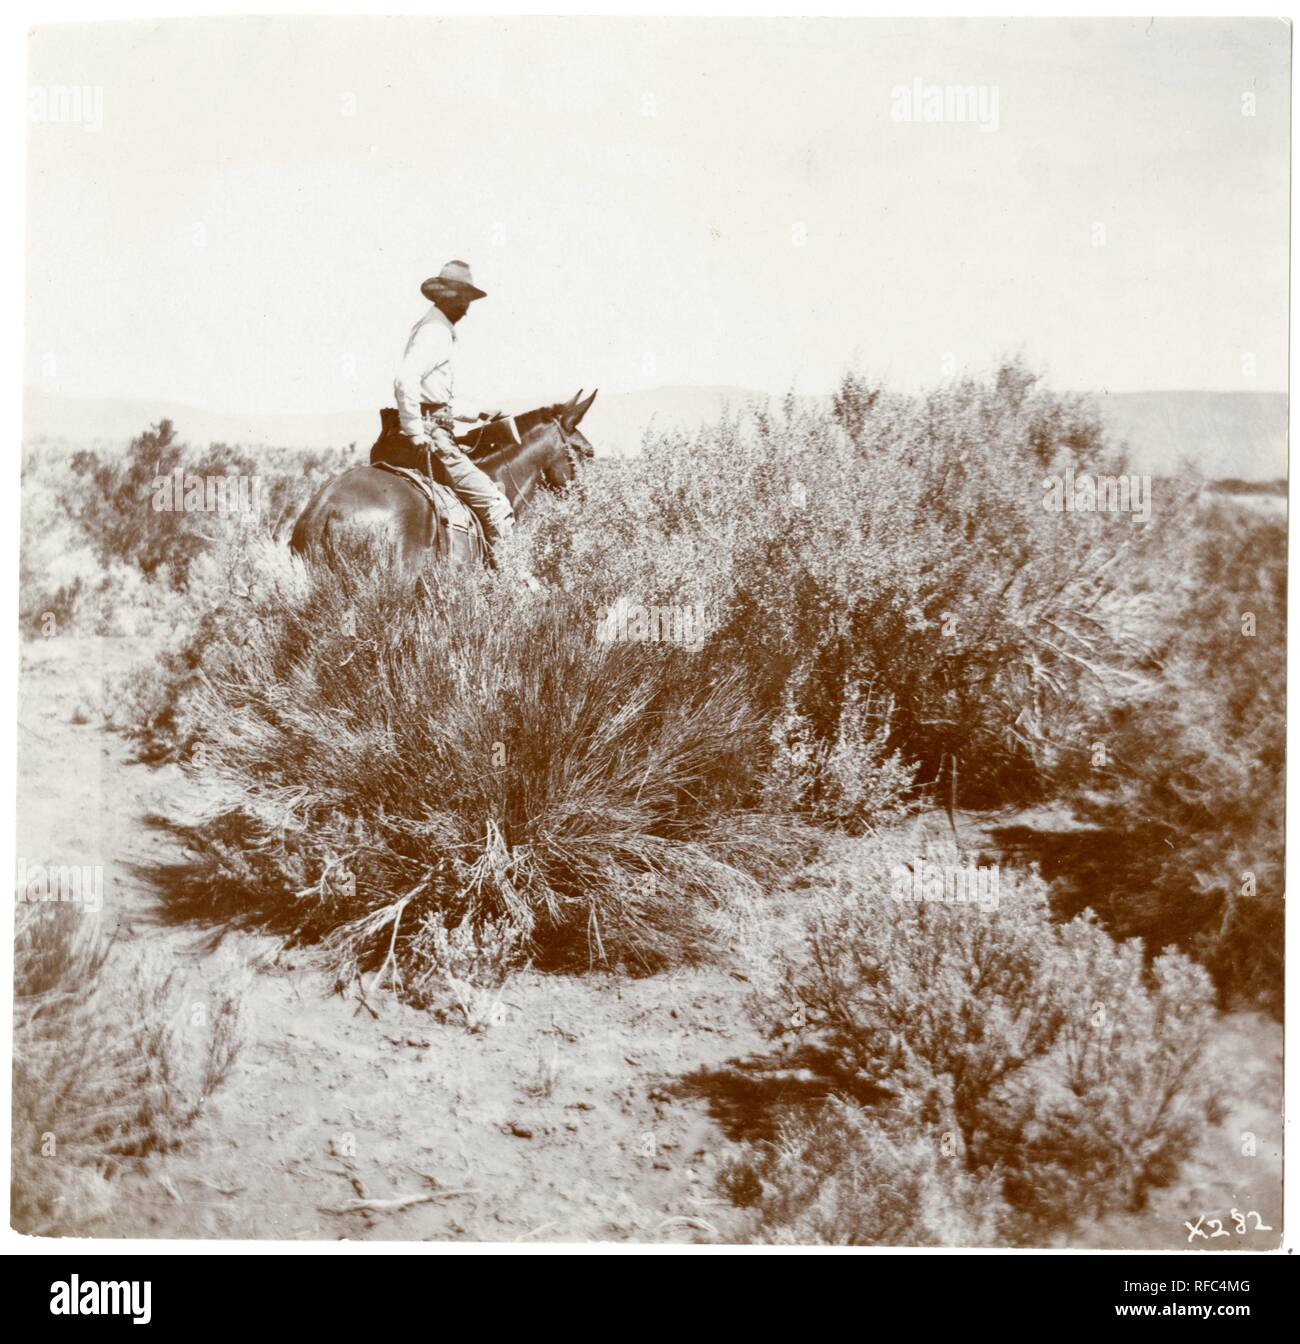 RU 007267, Box 5, Folder 12; 'Photograph taken for Vernon Orlando Bailey during his work as field naturalist for the United States Department of Agriculture Bureau of Biological Survey or its predecessor, Division of Economic Ornithology and Mammalogy, in Nevada and California in 1898.' - Stock Image